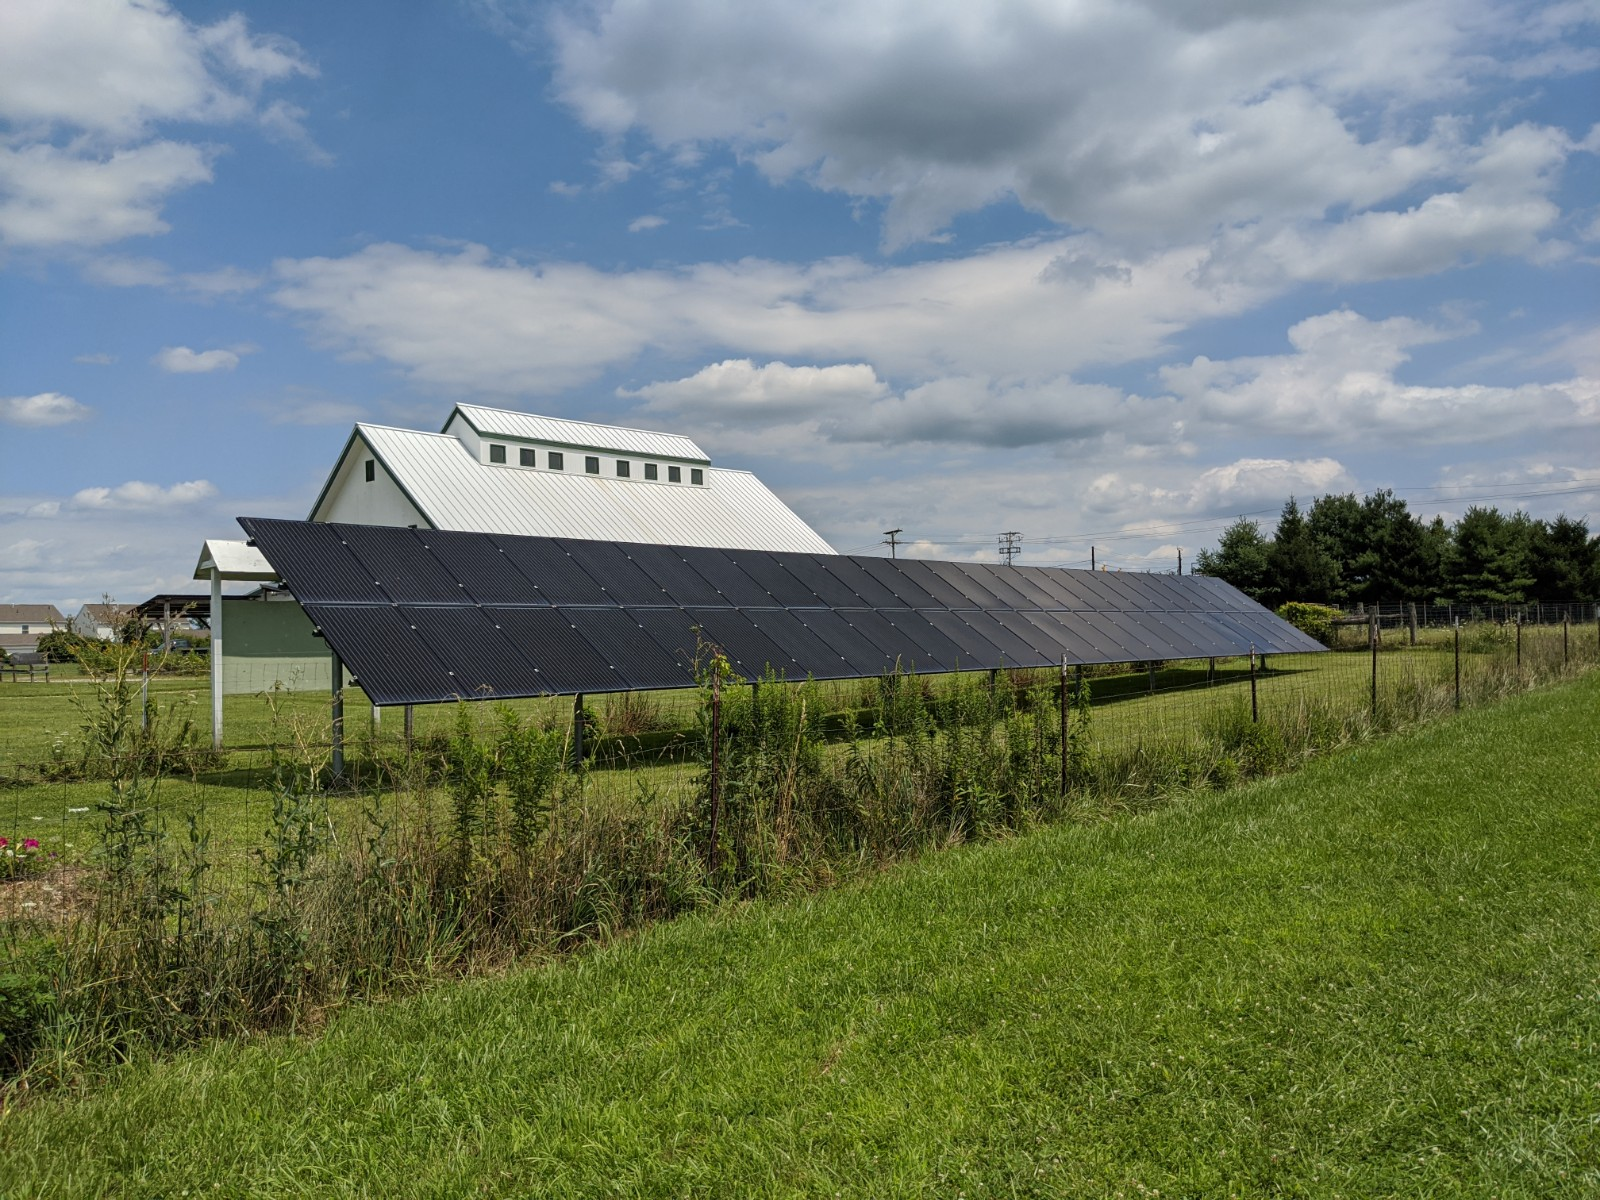 Fore ground: a row of solar panels. In the background roof outline of Shepherd's Corner's big white barn.